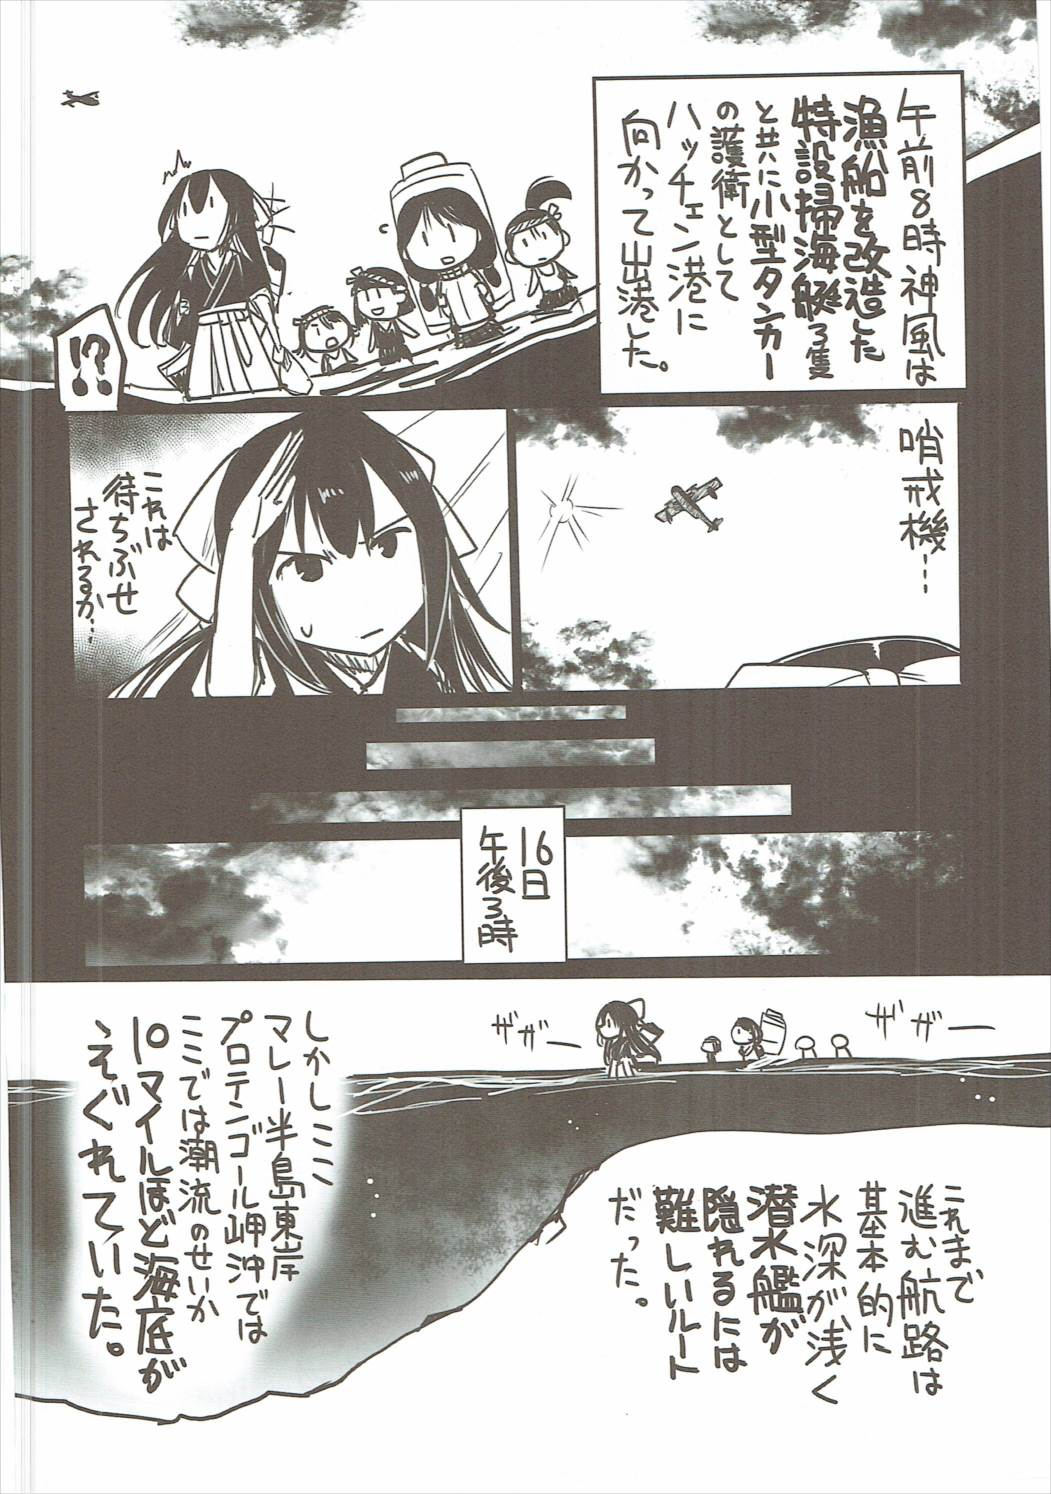 5girls aircraft airplane comic greyscale highres horizon kamikaze_(kantai_collection) kantai_collection long_hair meiji_schoolgirl_uniform monochrome multiple_girls ocean ribbon sakazaki_freddy sky translation_request